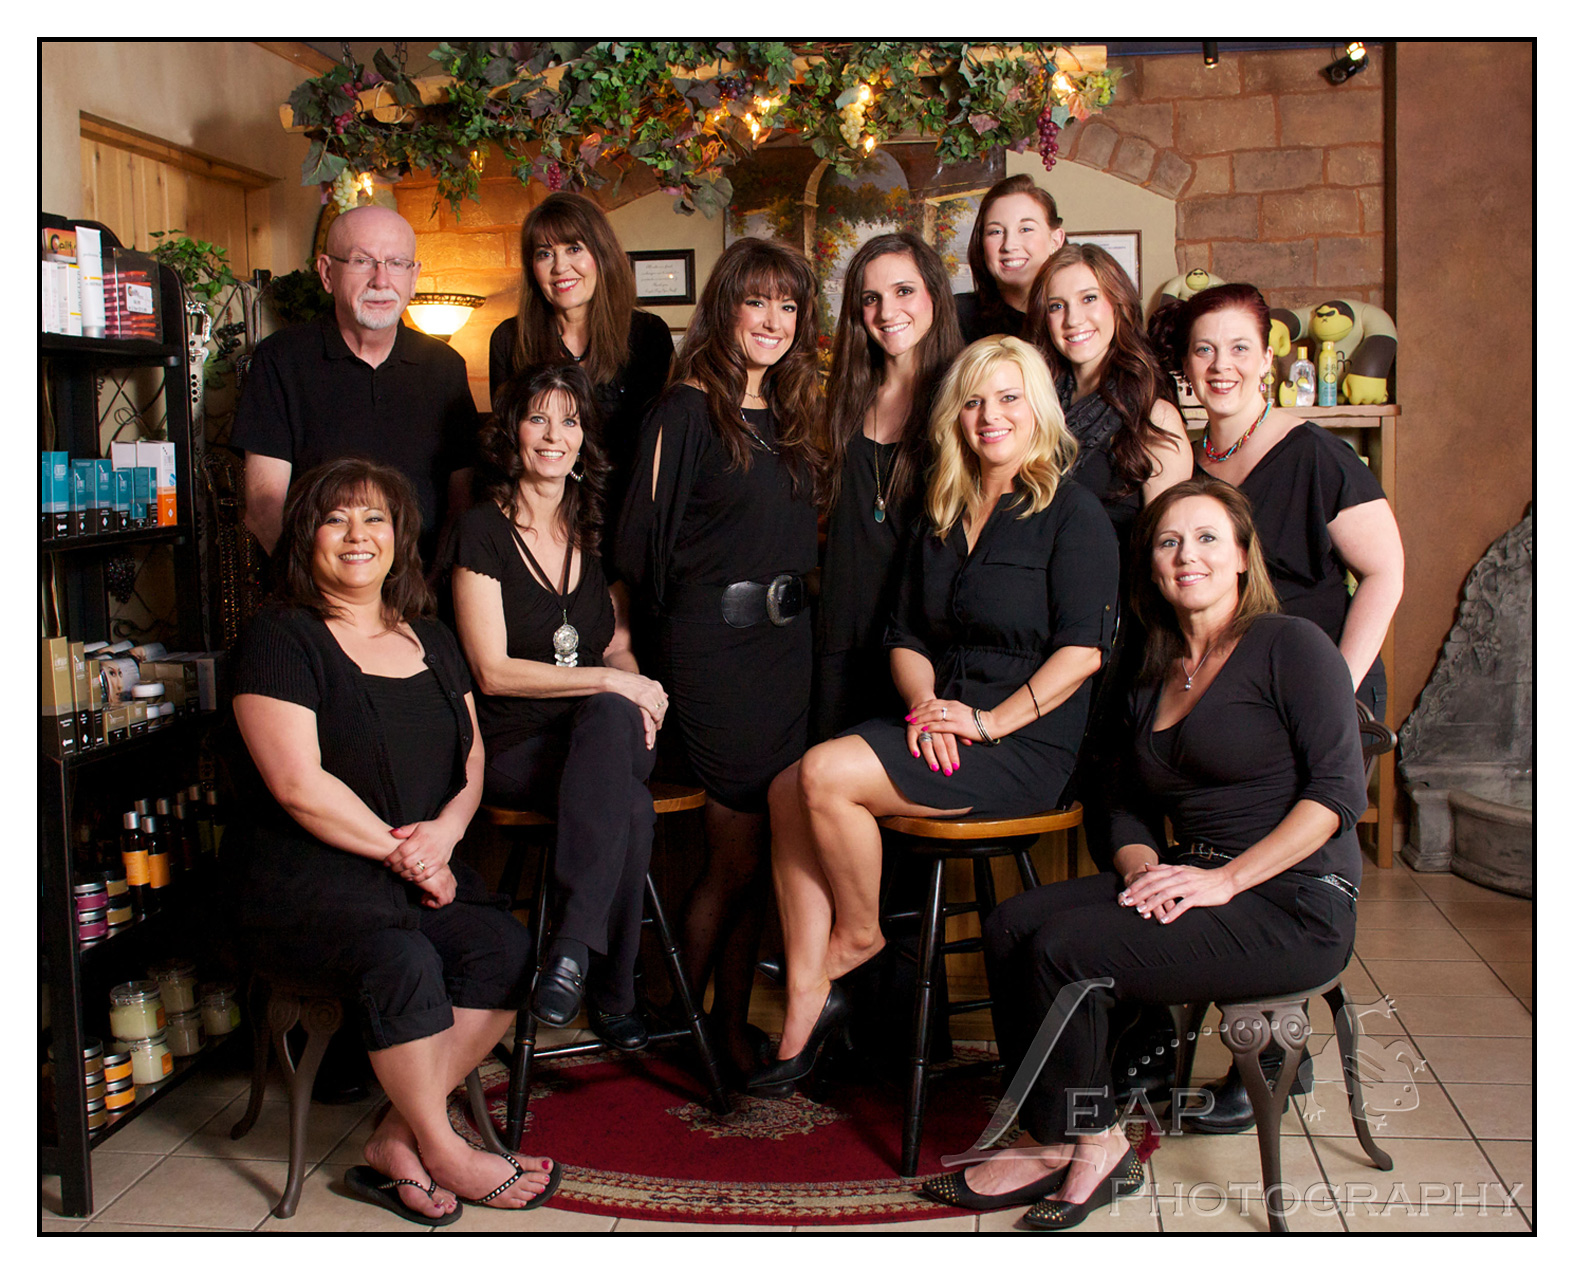 Eagle Day Spa employees group photo